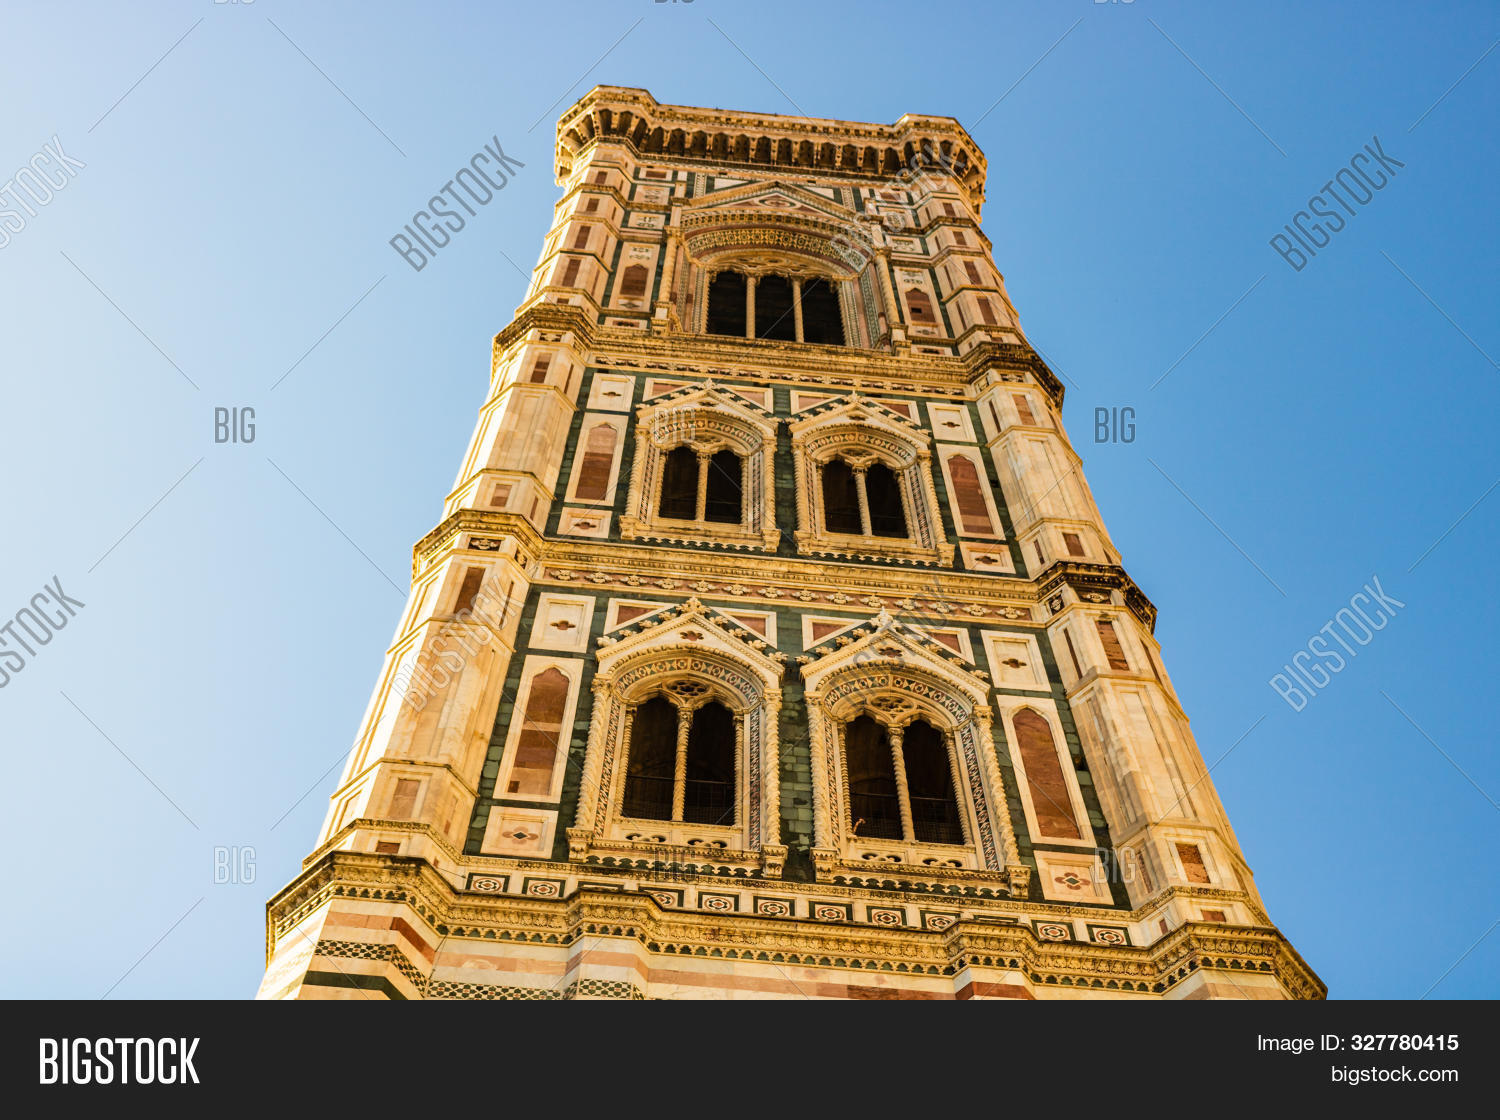 ancient,architecture,attraction,basilica,building,cathedral,church,city,cityscape,del,destination,dome,duomo,europe,famous,fiore,firenze,florence,gothic,italian,italy,landmark,maria,mary,medieval,old,panorama,panoramic,piazza,renaissance,saint,santa,sightseeing,sky,skyline,toscana,tour,tourism,travel,tuscany,view